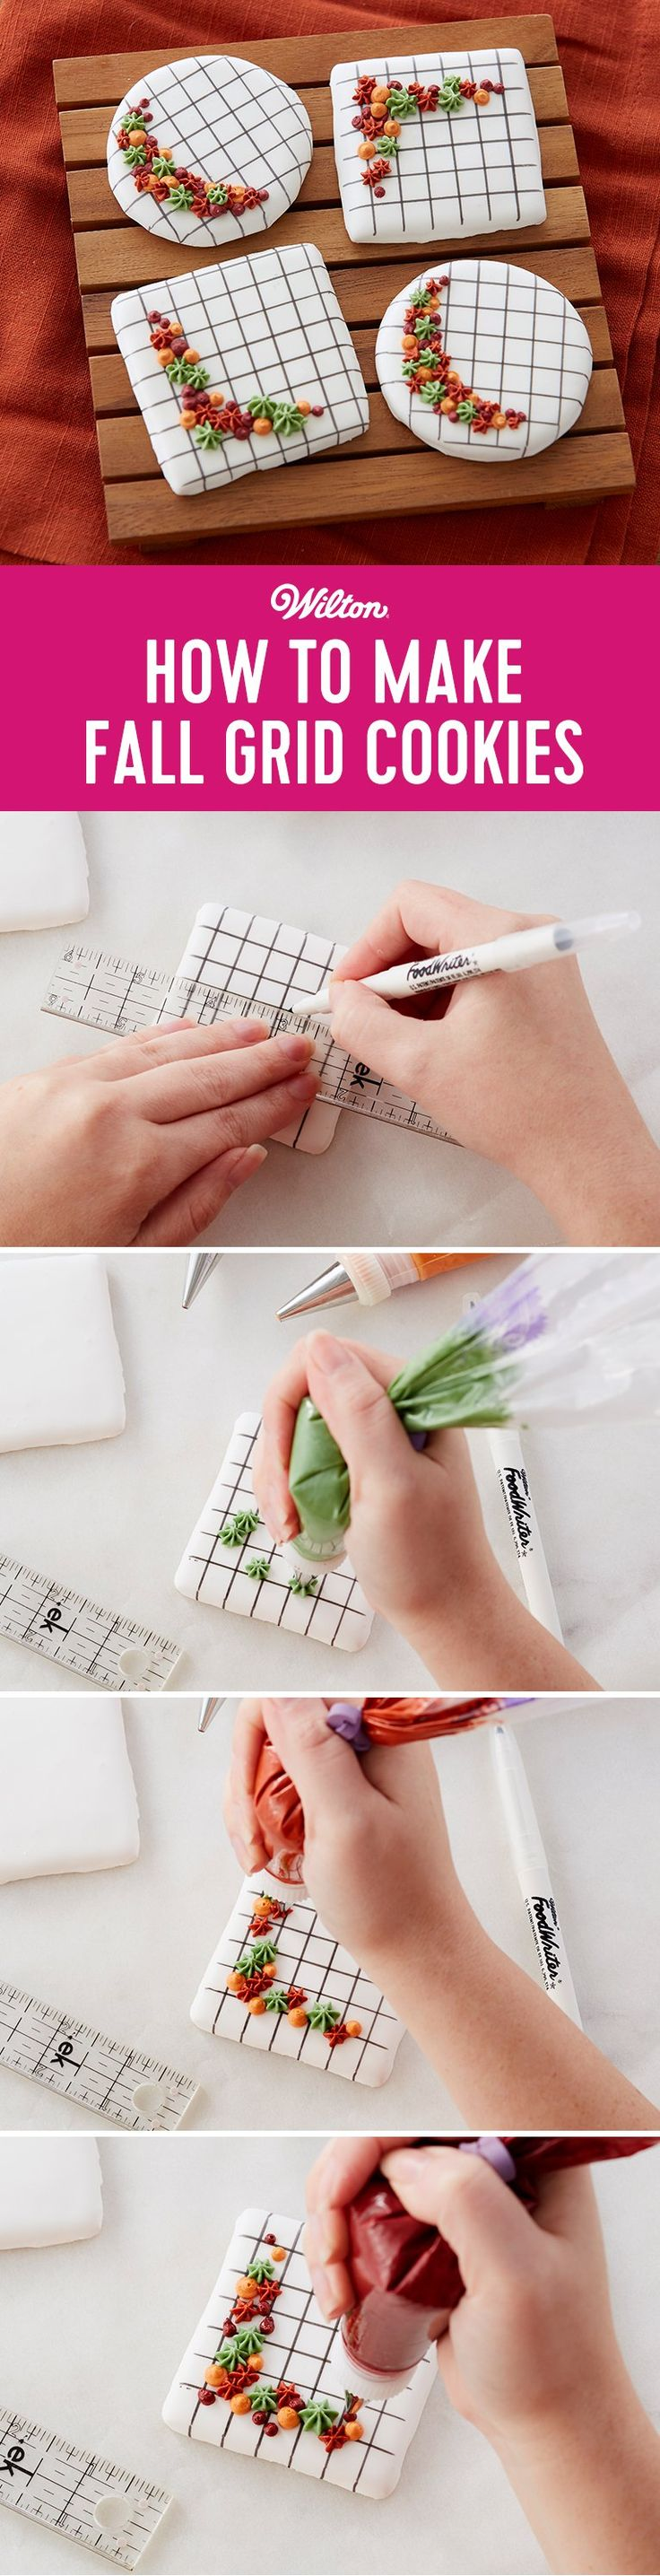 "How to Make Fall Grid Cookies - It's easy to make fall grid cookies! The grid pattern is easily drawn on the royal icing covered cookies using a Wilton FoodWriter edible color marker and a ruler. Add the seasonal-hued icing dots and stars piped in a flowing ""C"" curve for trendy contrast. #diy #fallbaking #cookies #wiltoncakes"